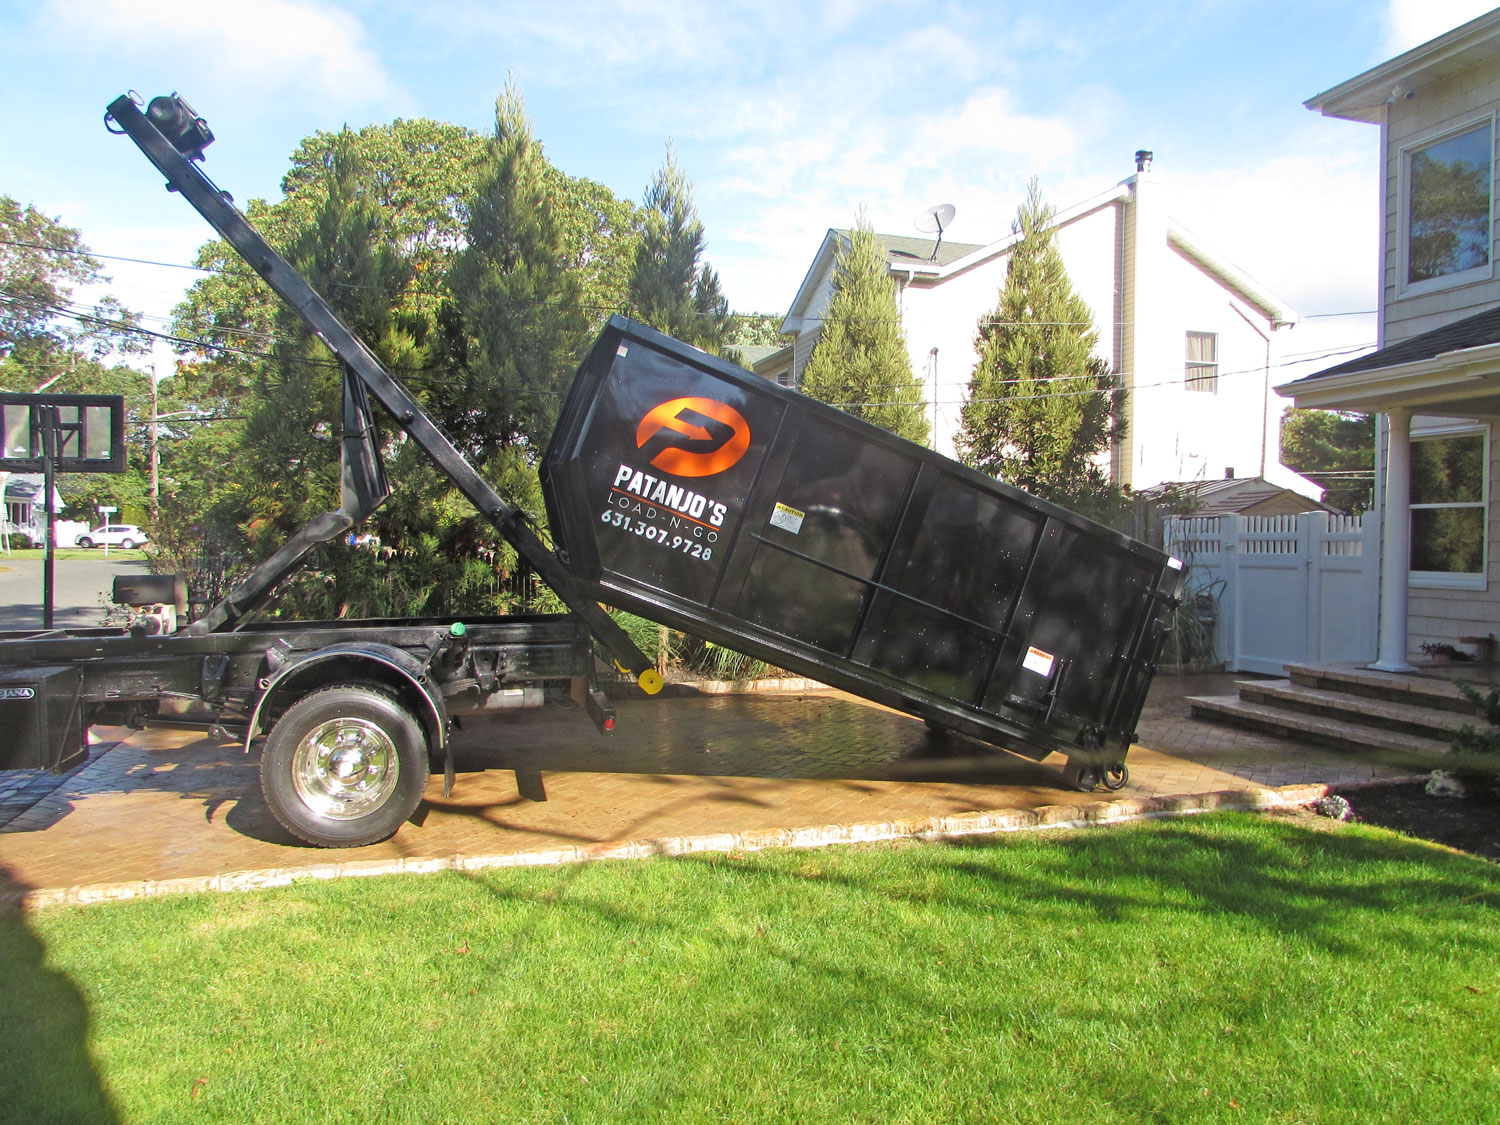 Patanjo's Load-N-Go Dumpster Rentals in Suffolk County